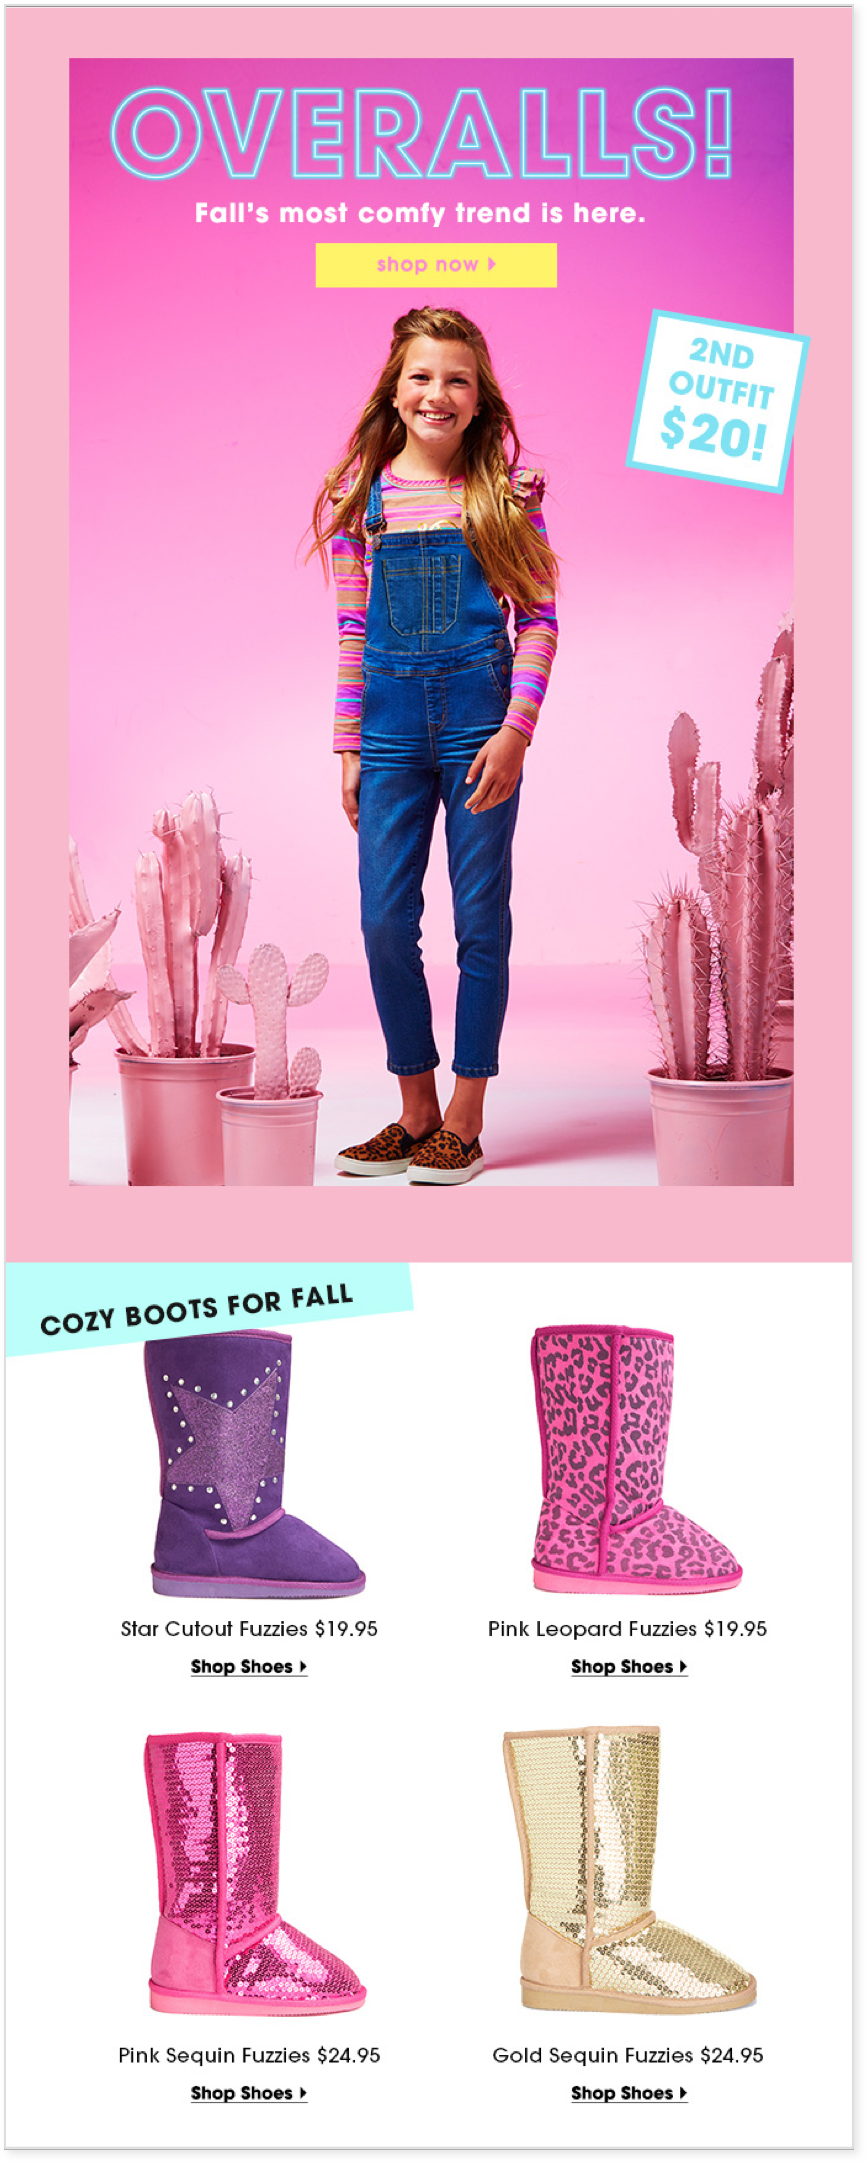 Although overalls was the main feature of the email, we cross-sell shoes to allow optionality.